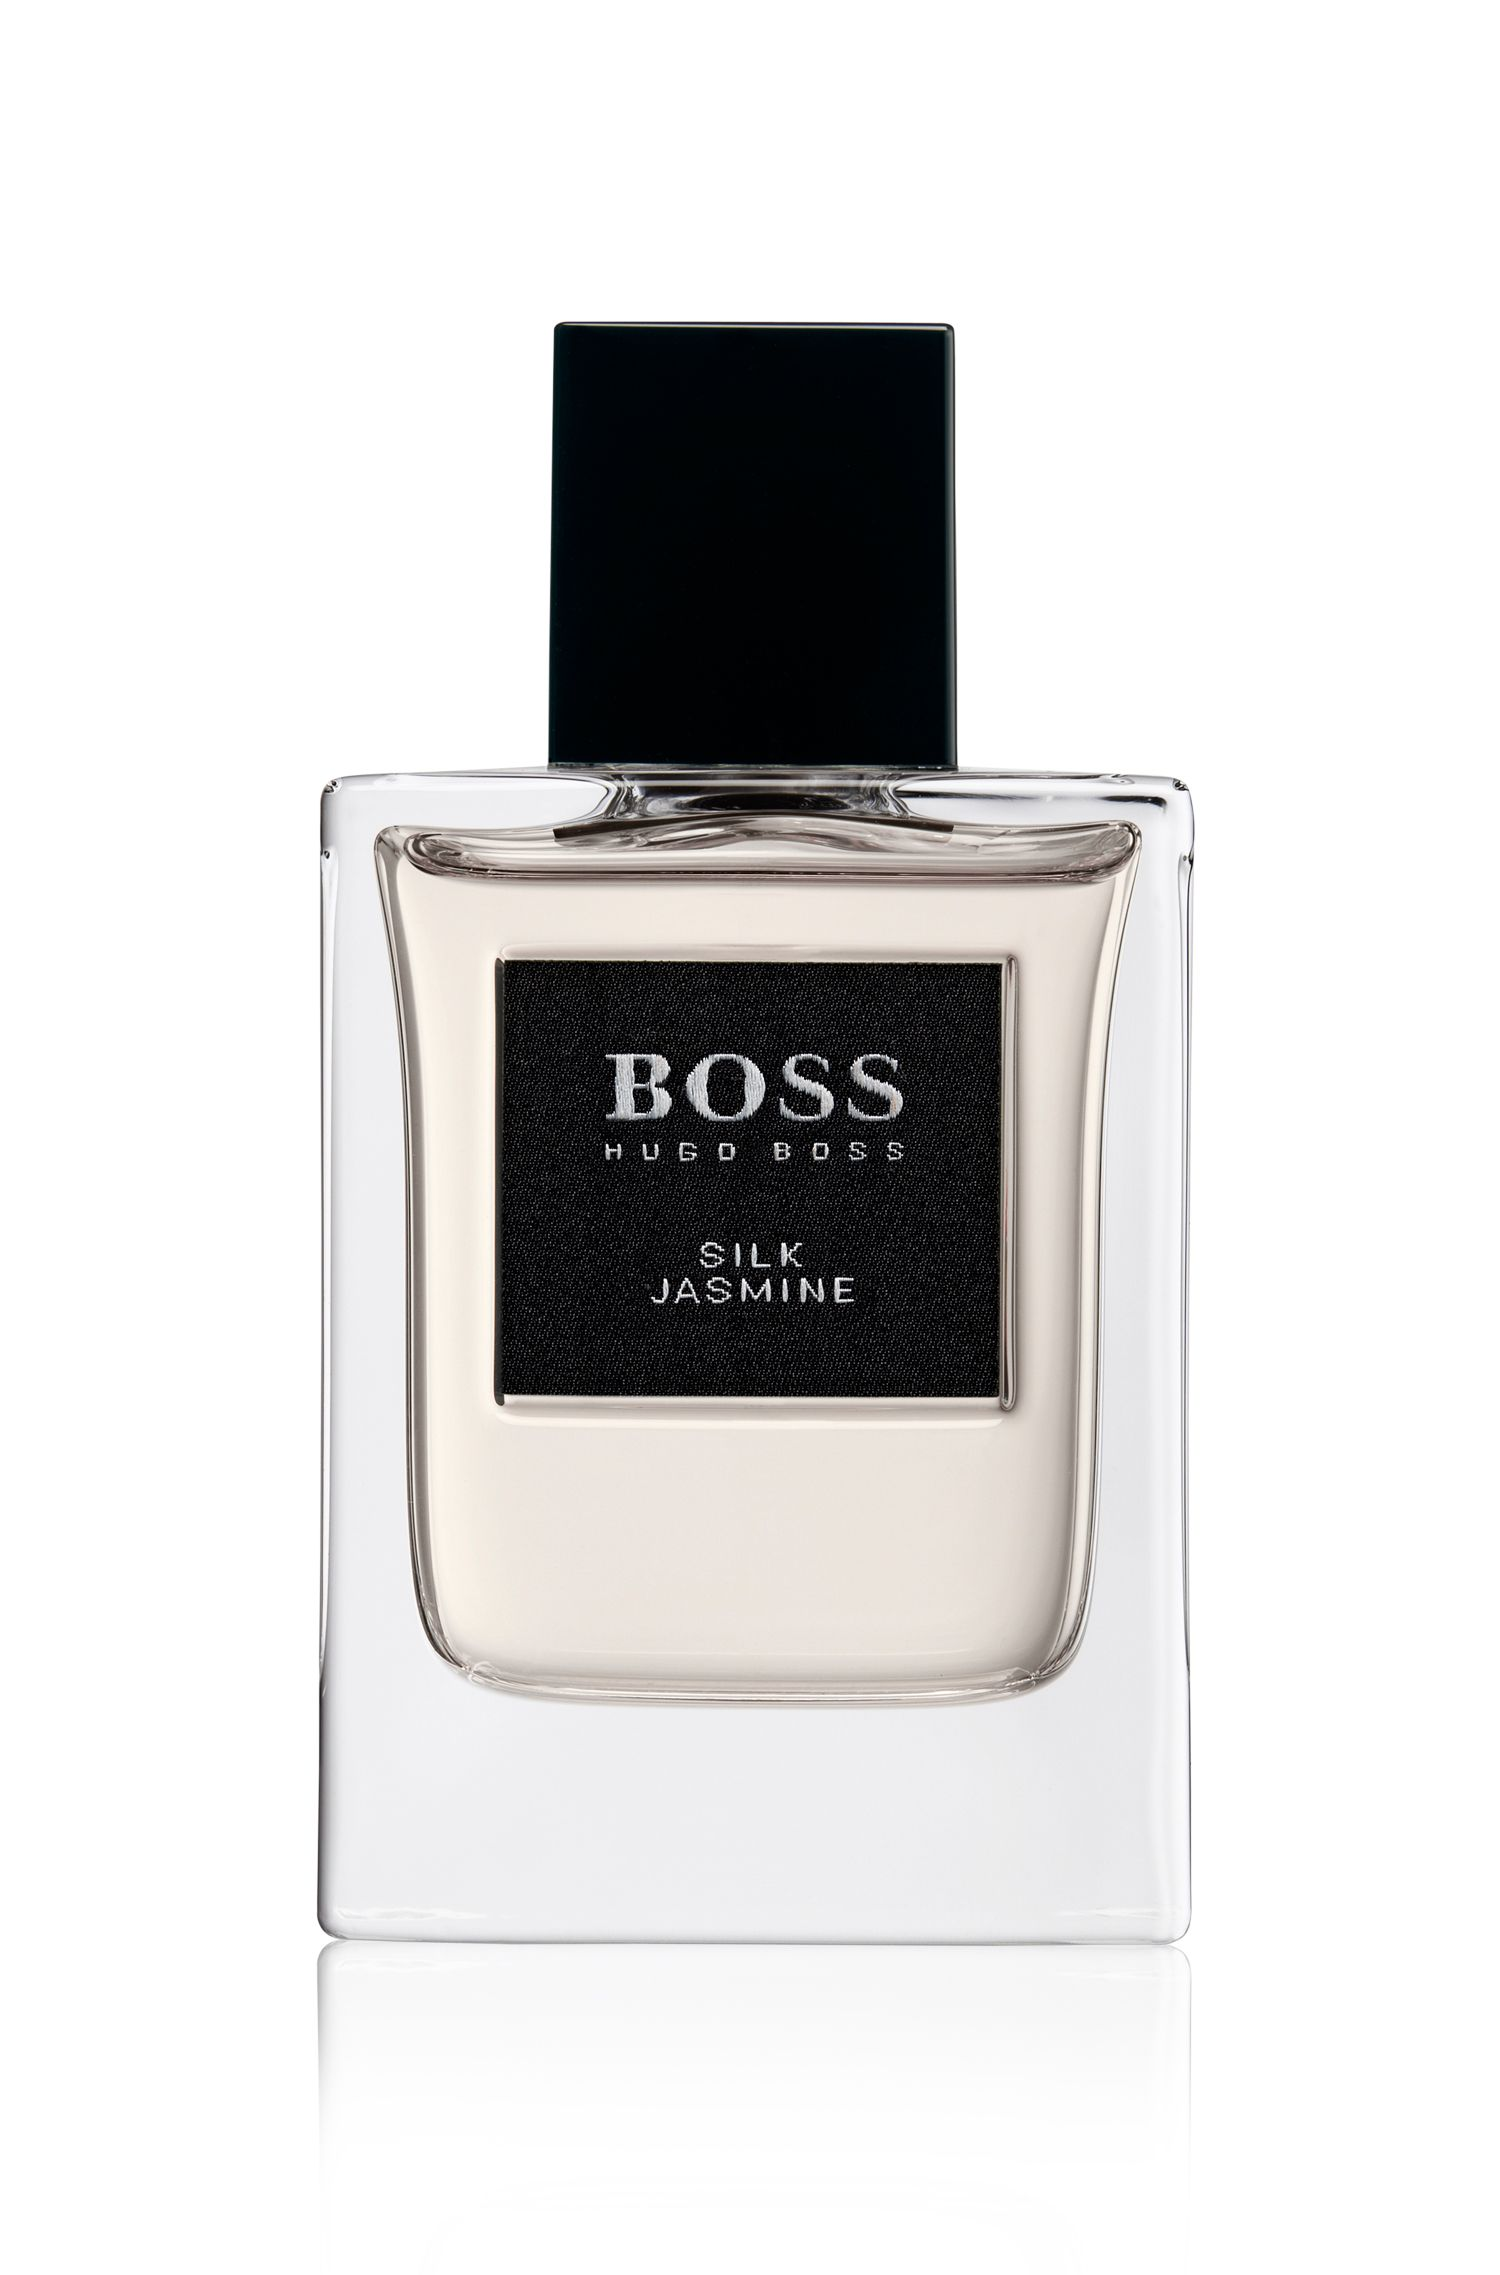 1.6 fl. oz. (50 mL) Silk & Jasmine Eau de Toilette | BOSS The Collection